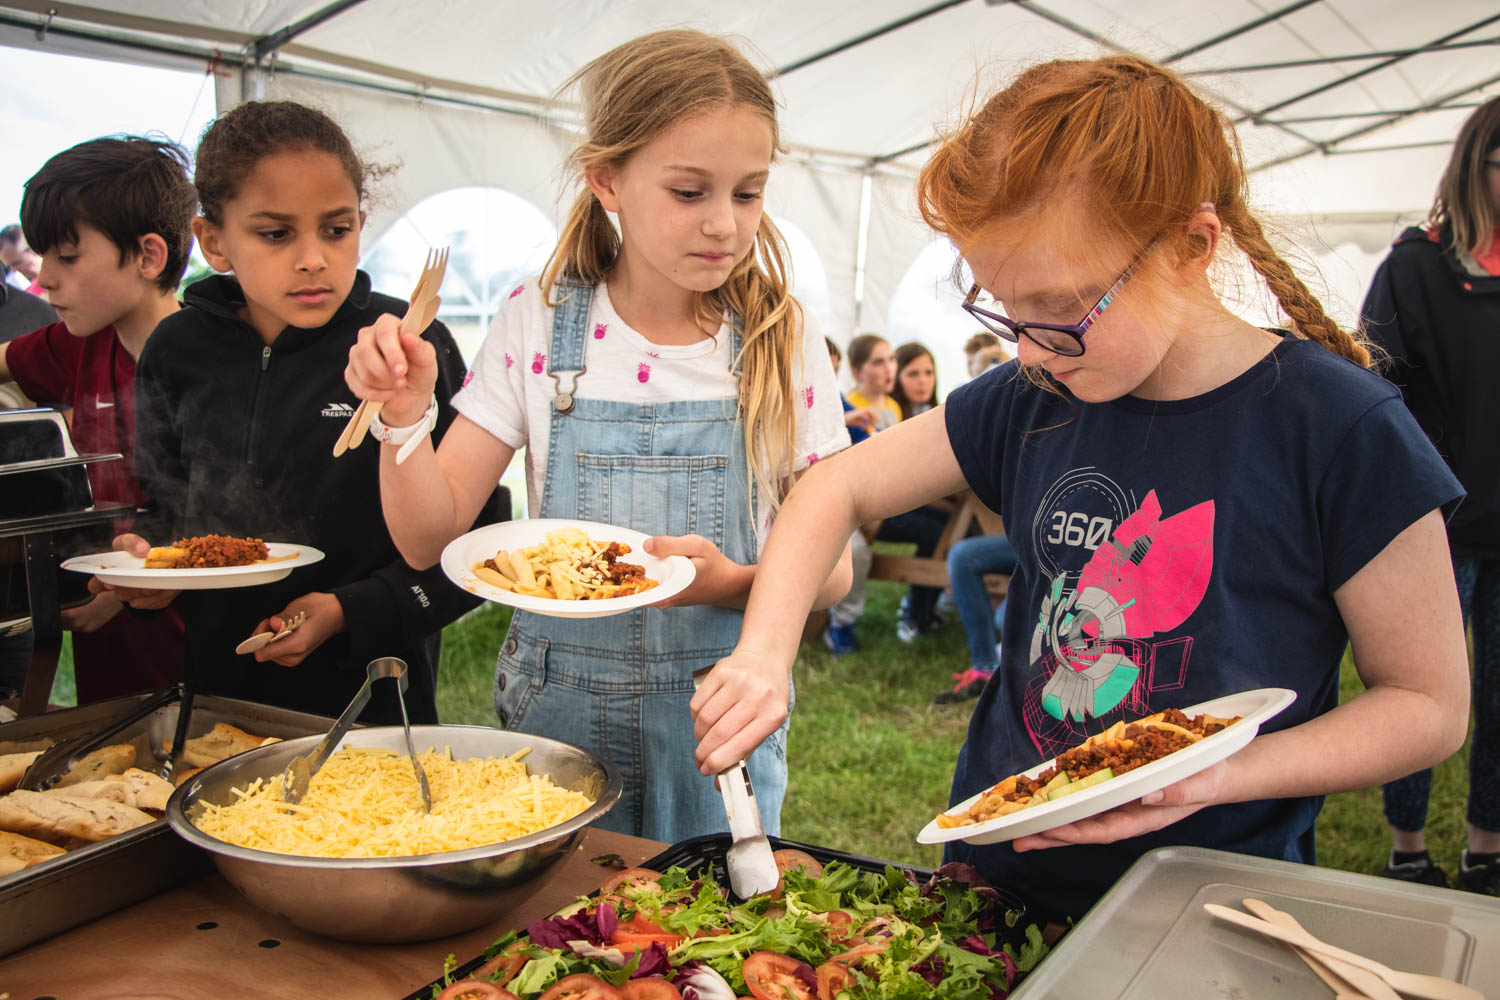 Youth activities are fun and involving. We offer catering options too.